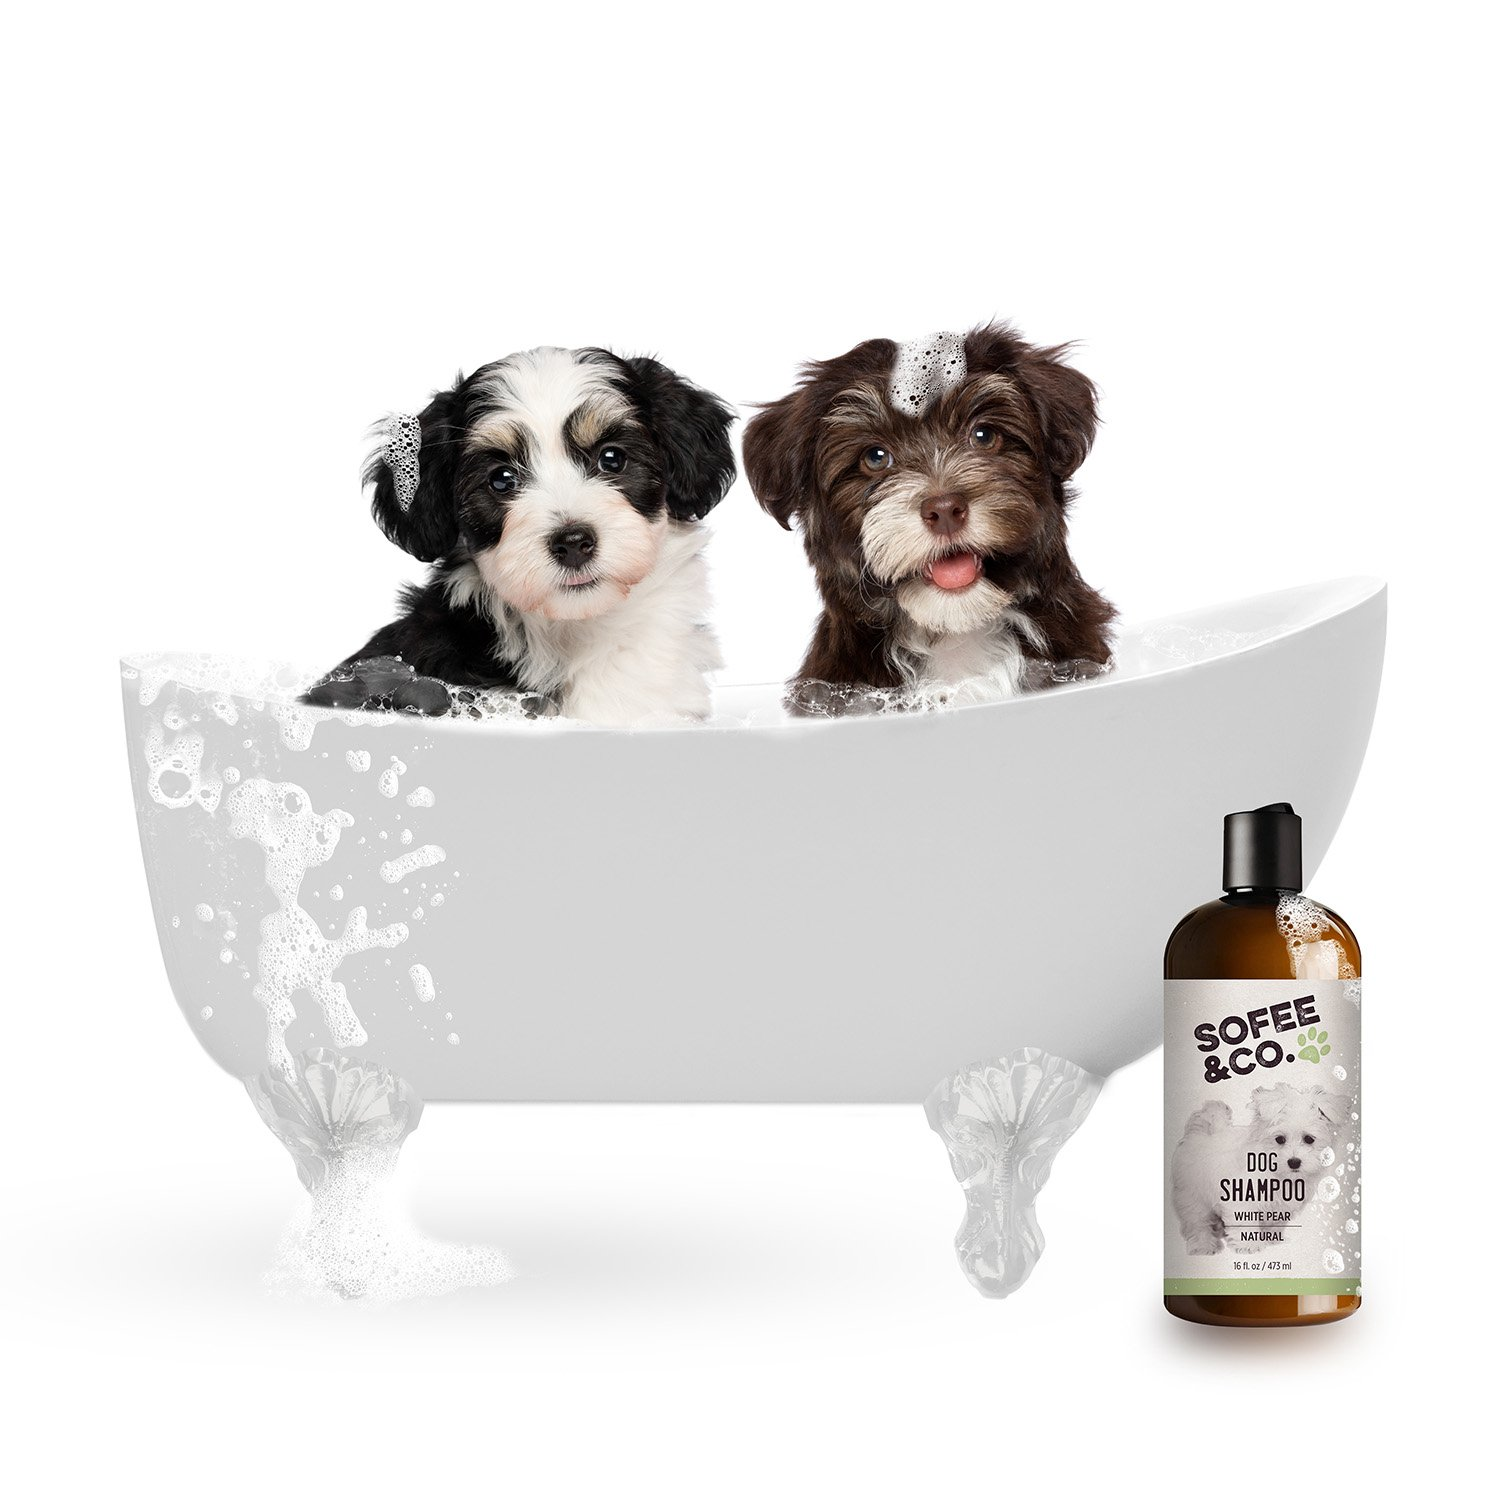 Sofee & Co. Natural Dog/Puppy Shampoo, White Pear - Clean, Moisturize, Deodorize, Detangle, Calm, Soothe, Soften, Normal, Dry, Itchy, Allergy, Sensitive Skin. Prevent Mattes. 16 oz by Sofee & Co. (Image #4)